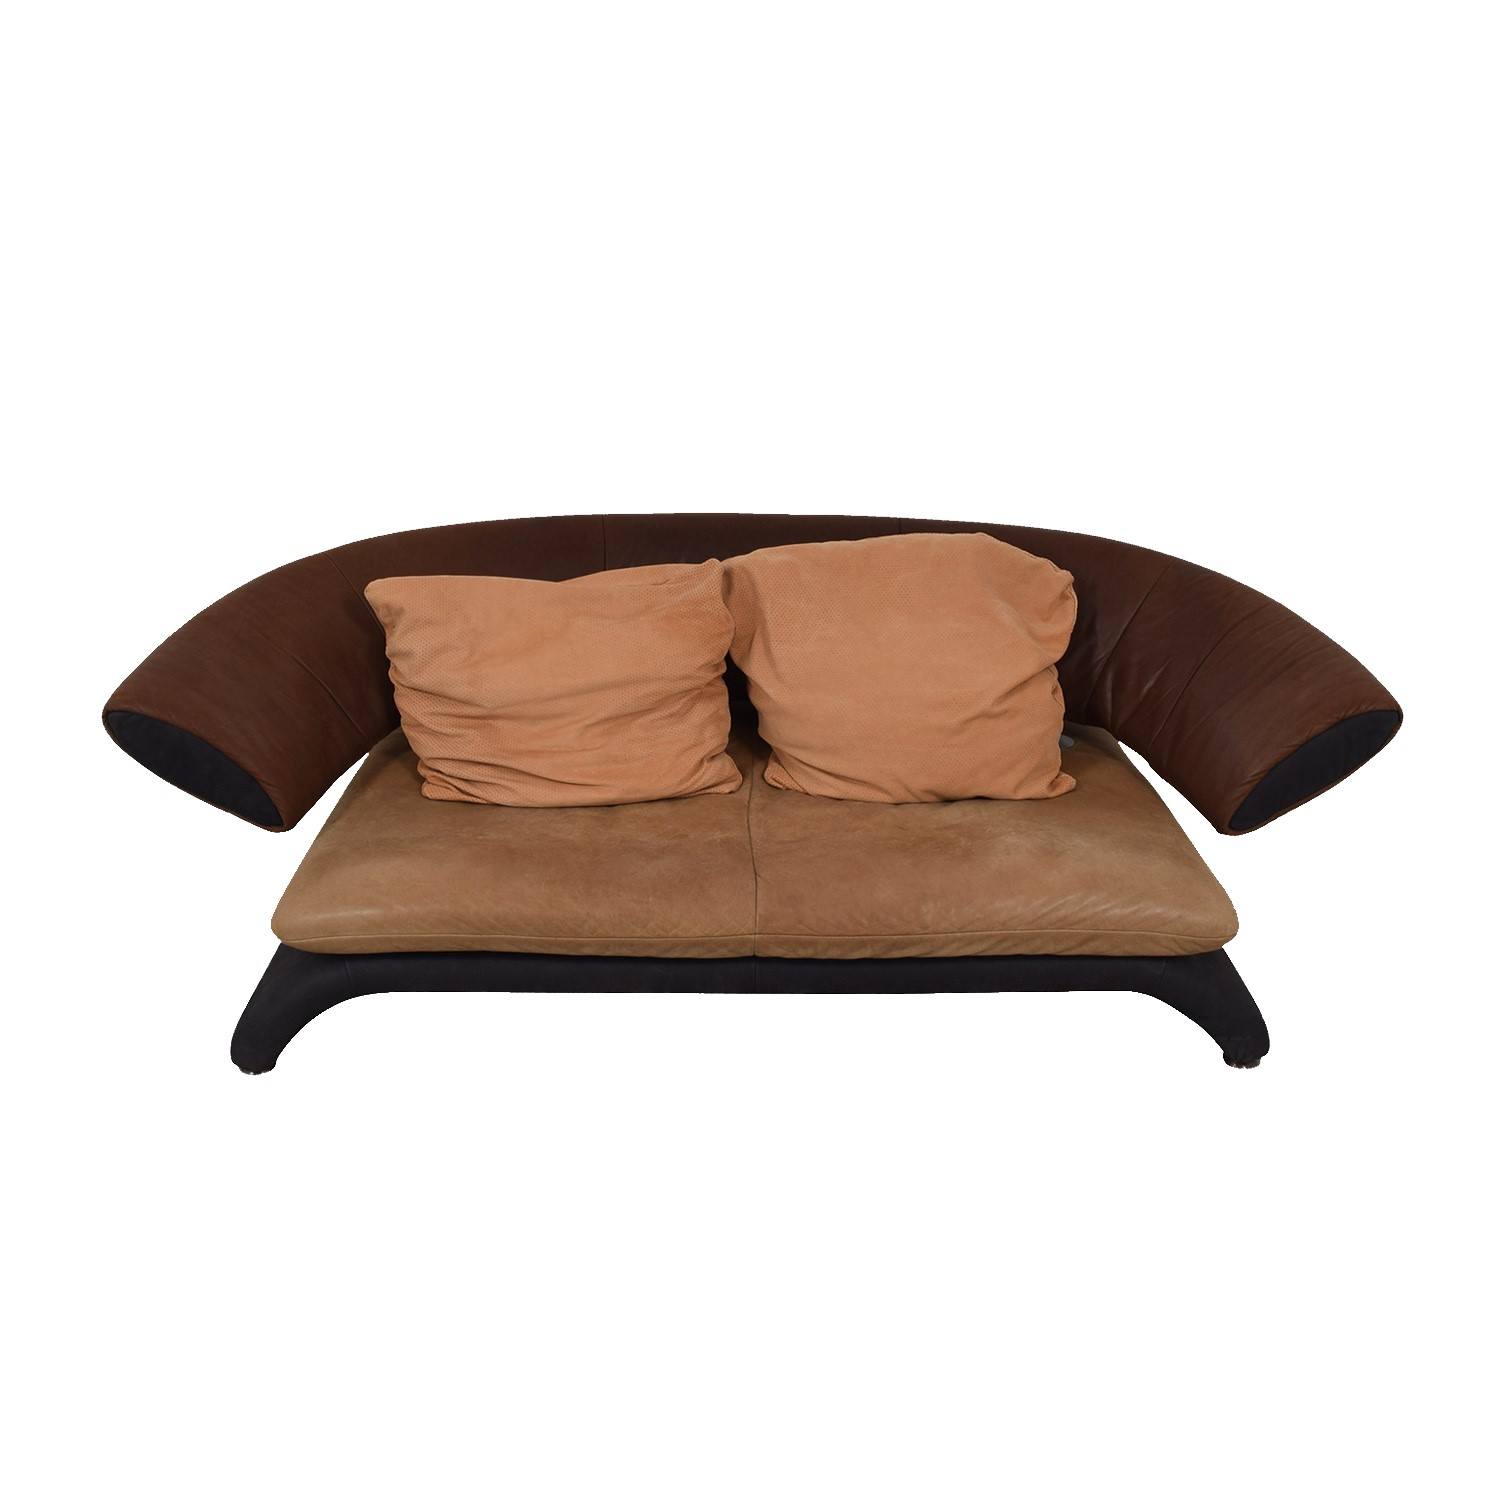 87% OFF - Koinor Koinor Shades of Brown Modern Couch / Sofas